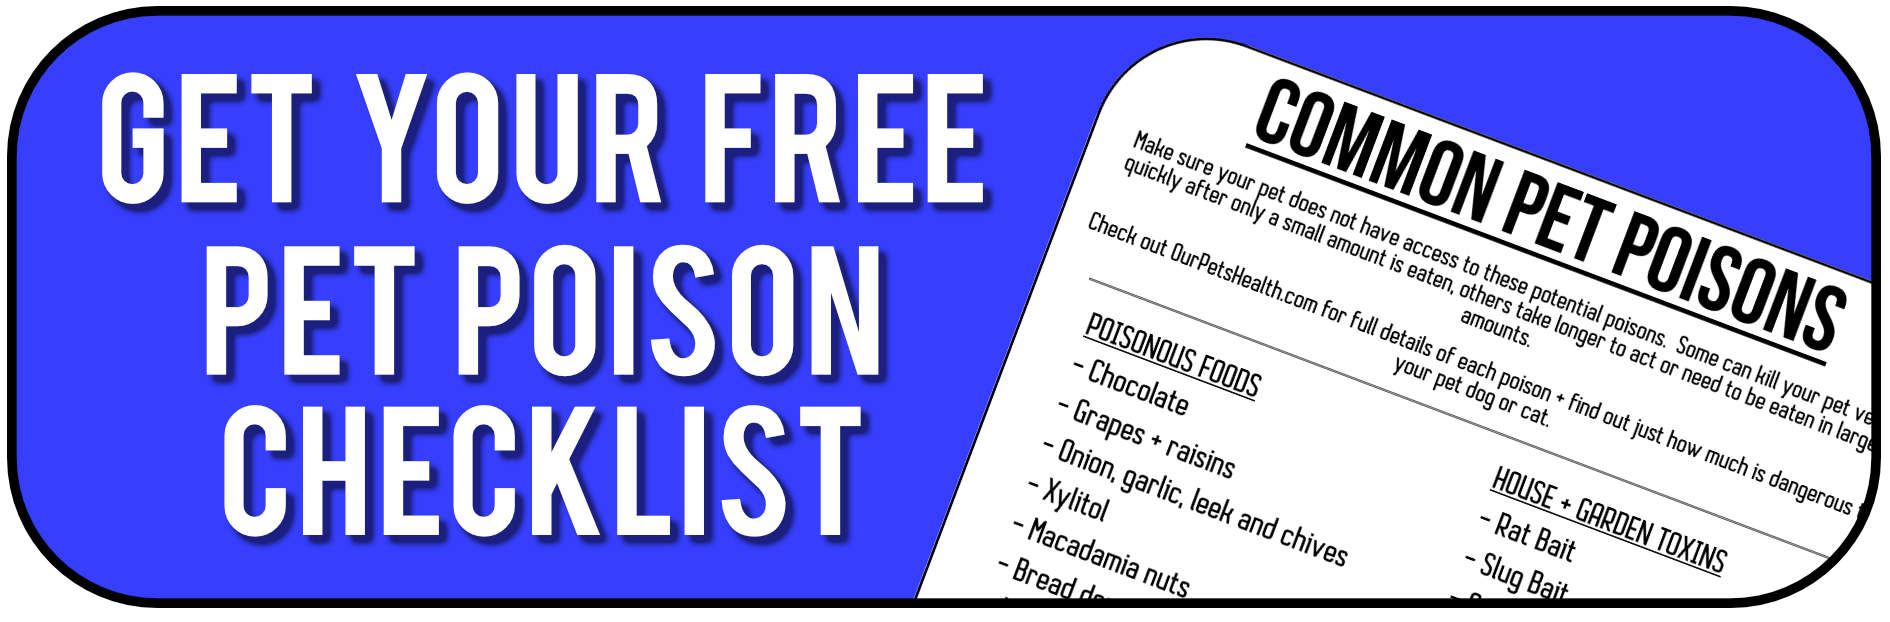 download a checklist of the common pet poisons for dogs and cats